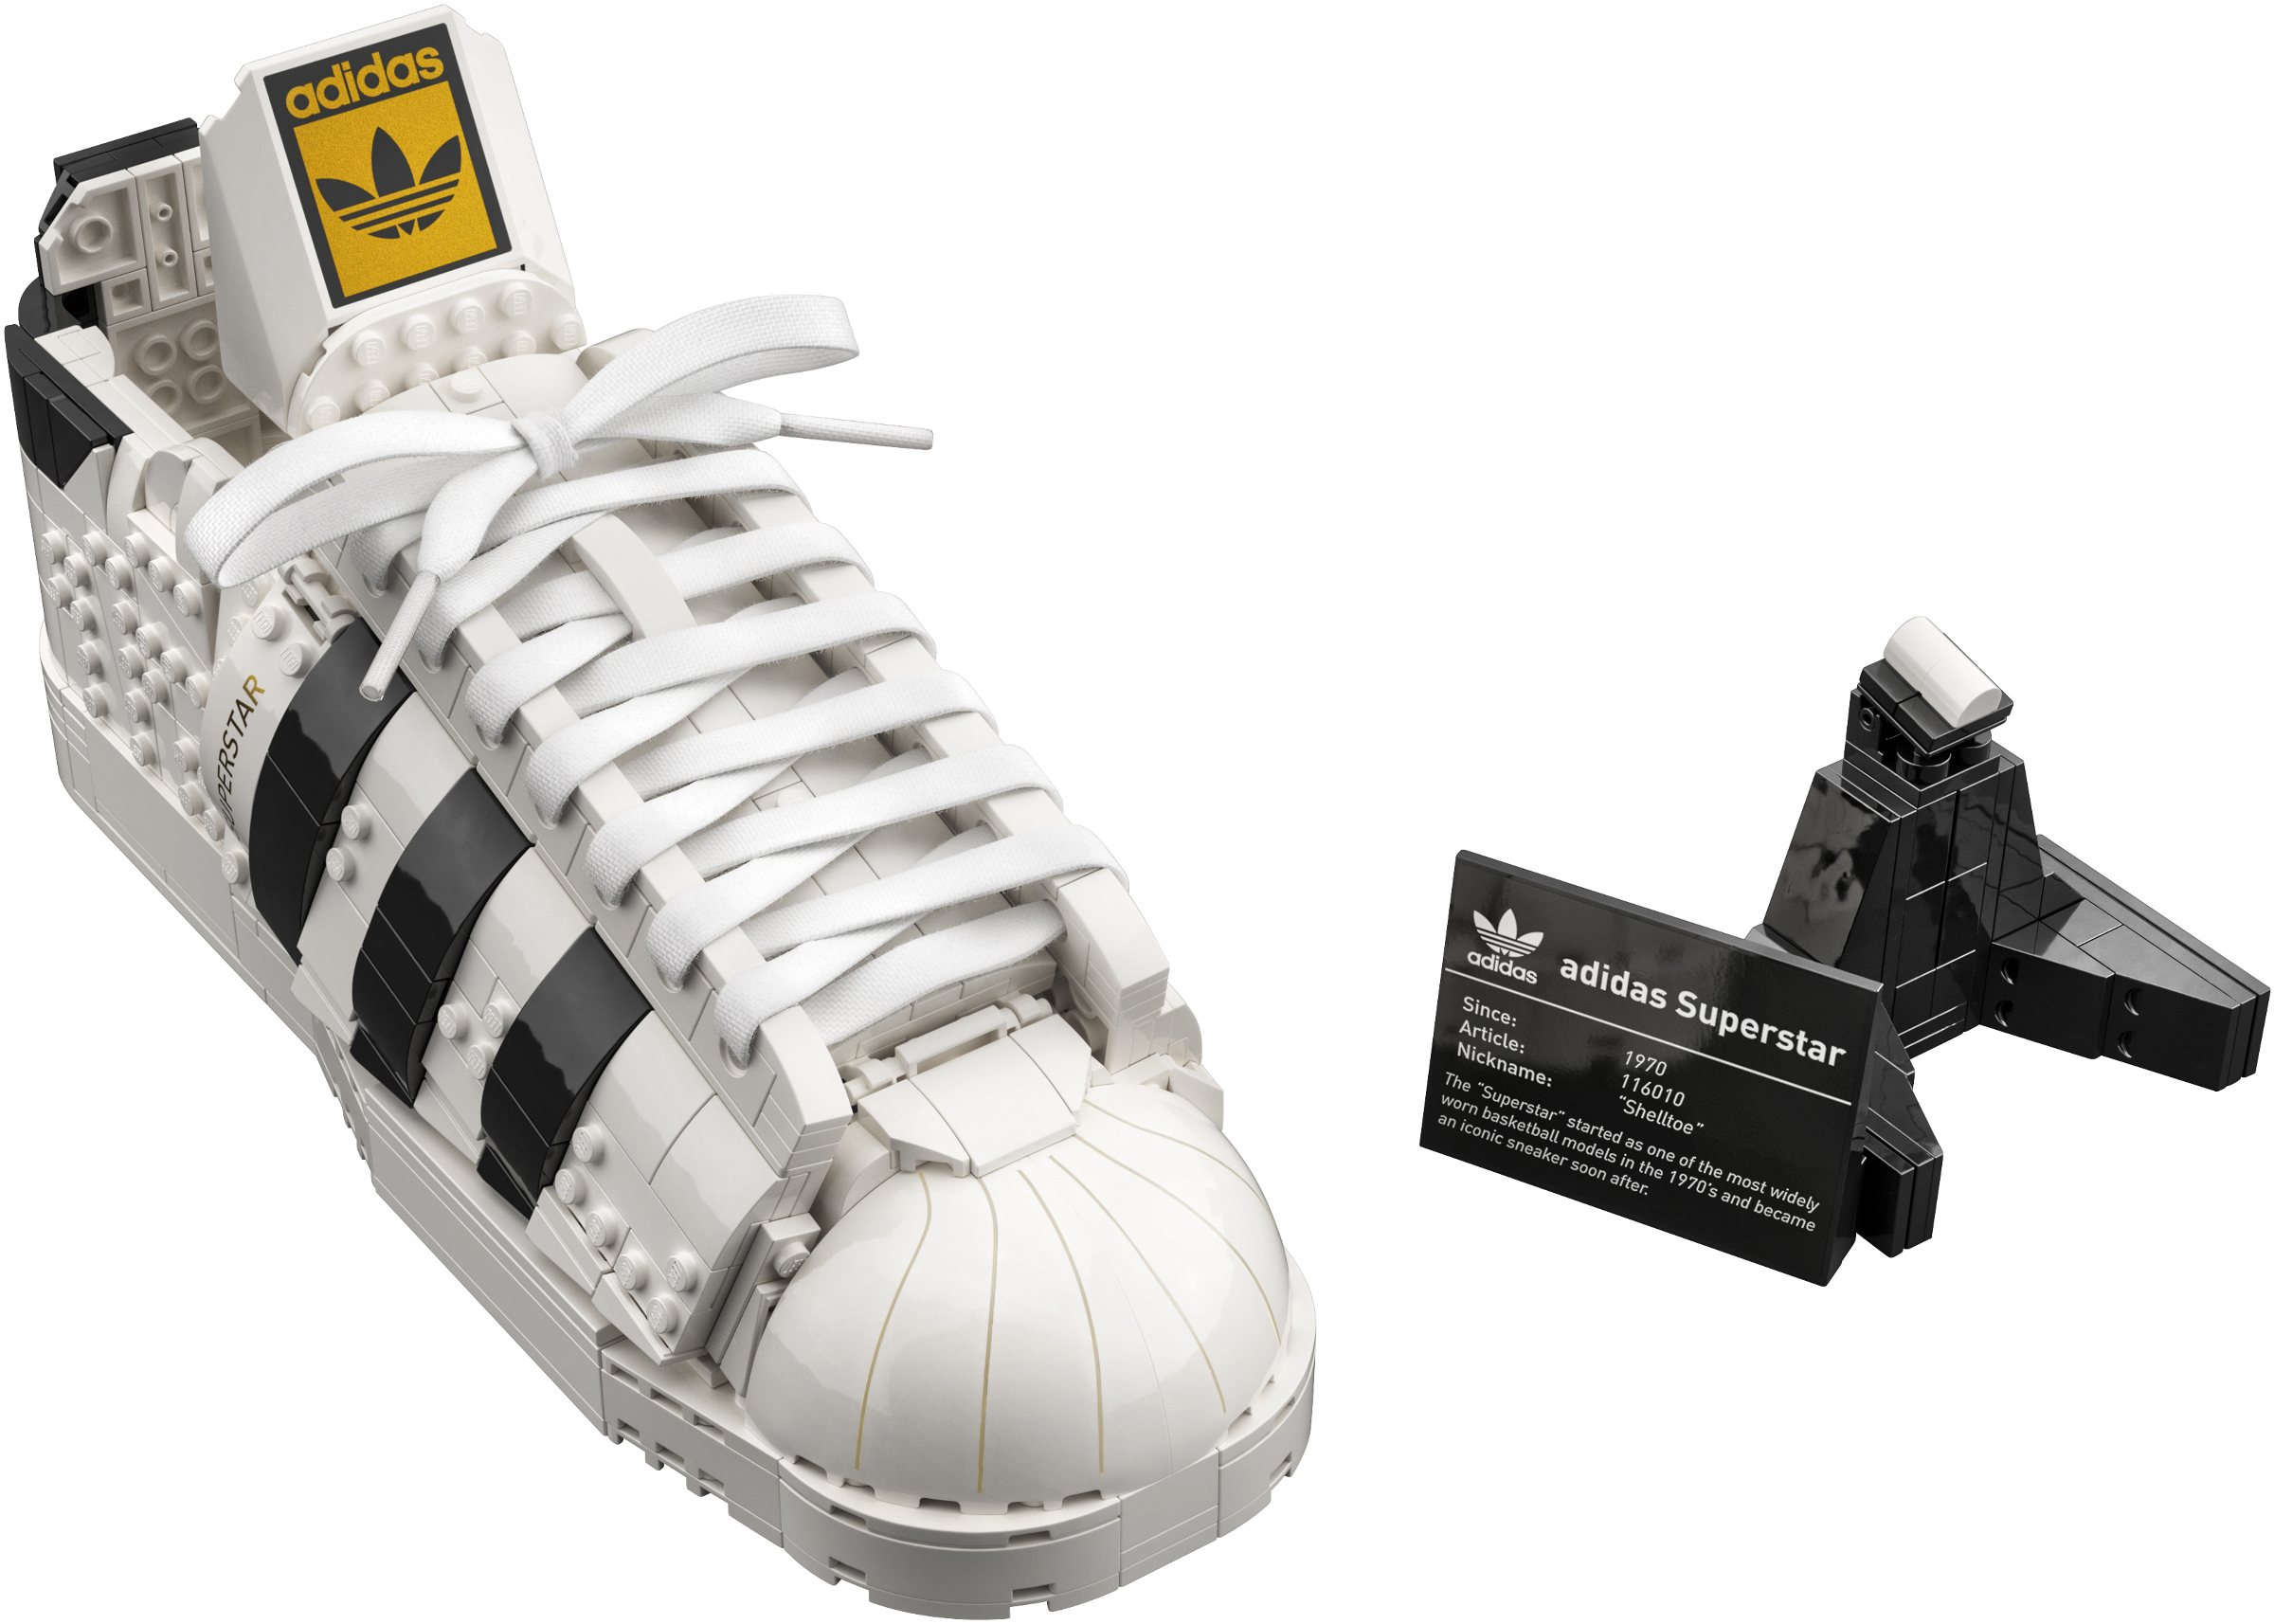 Adidas buildable trainer revealed!   Brickset: LEGO set guide and ...